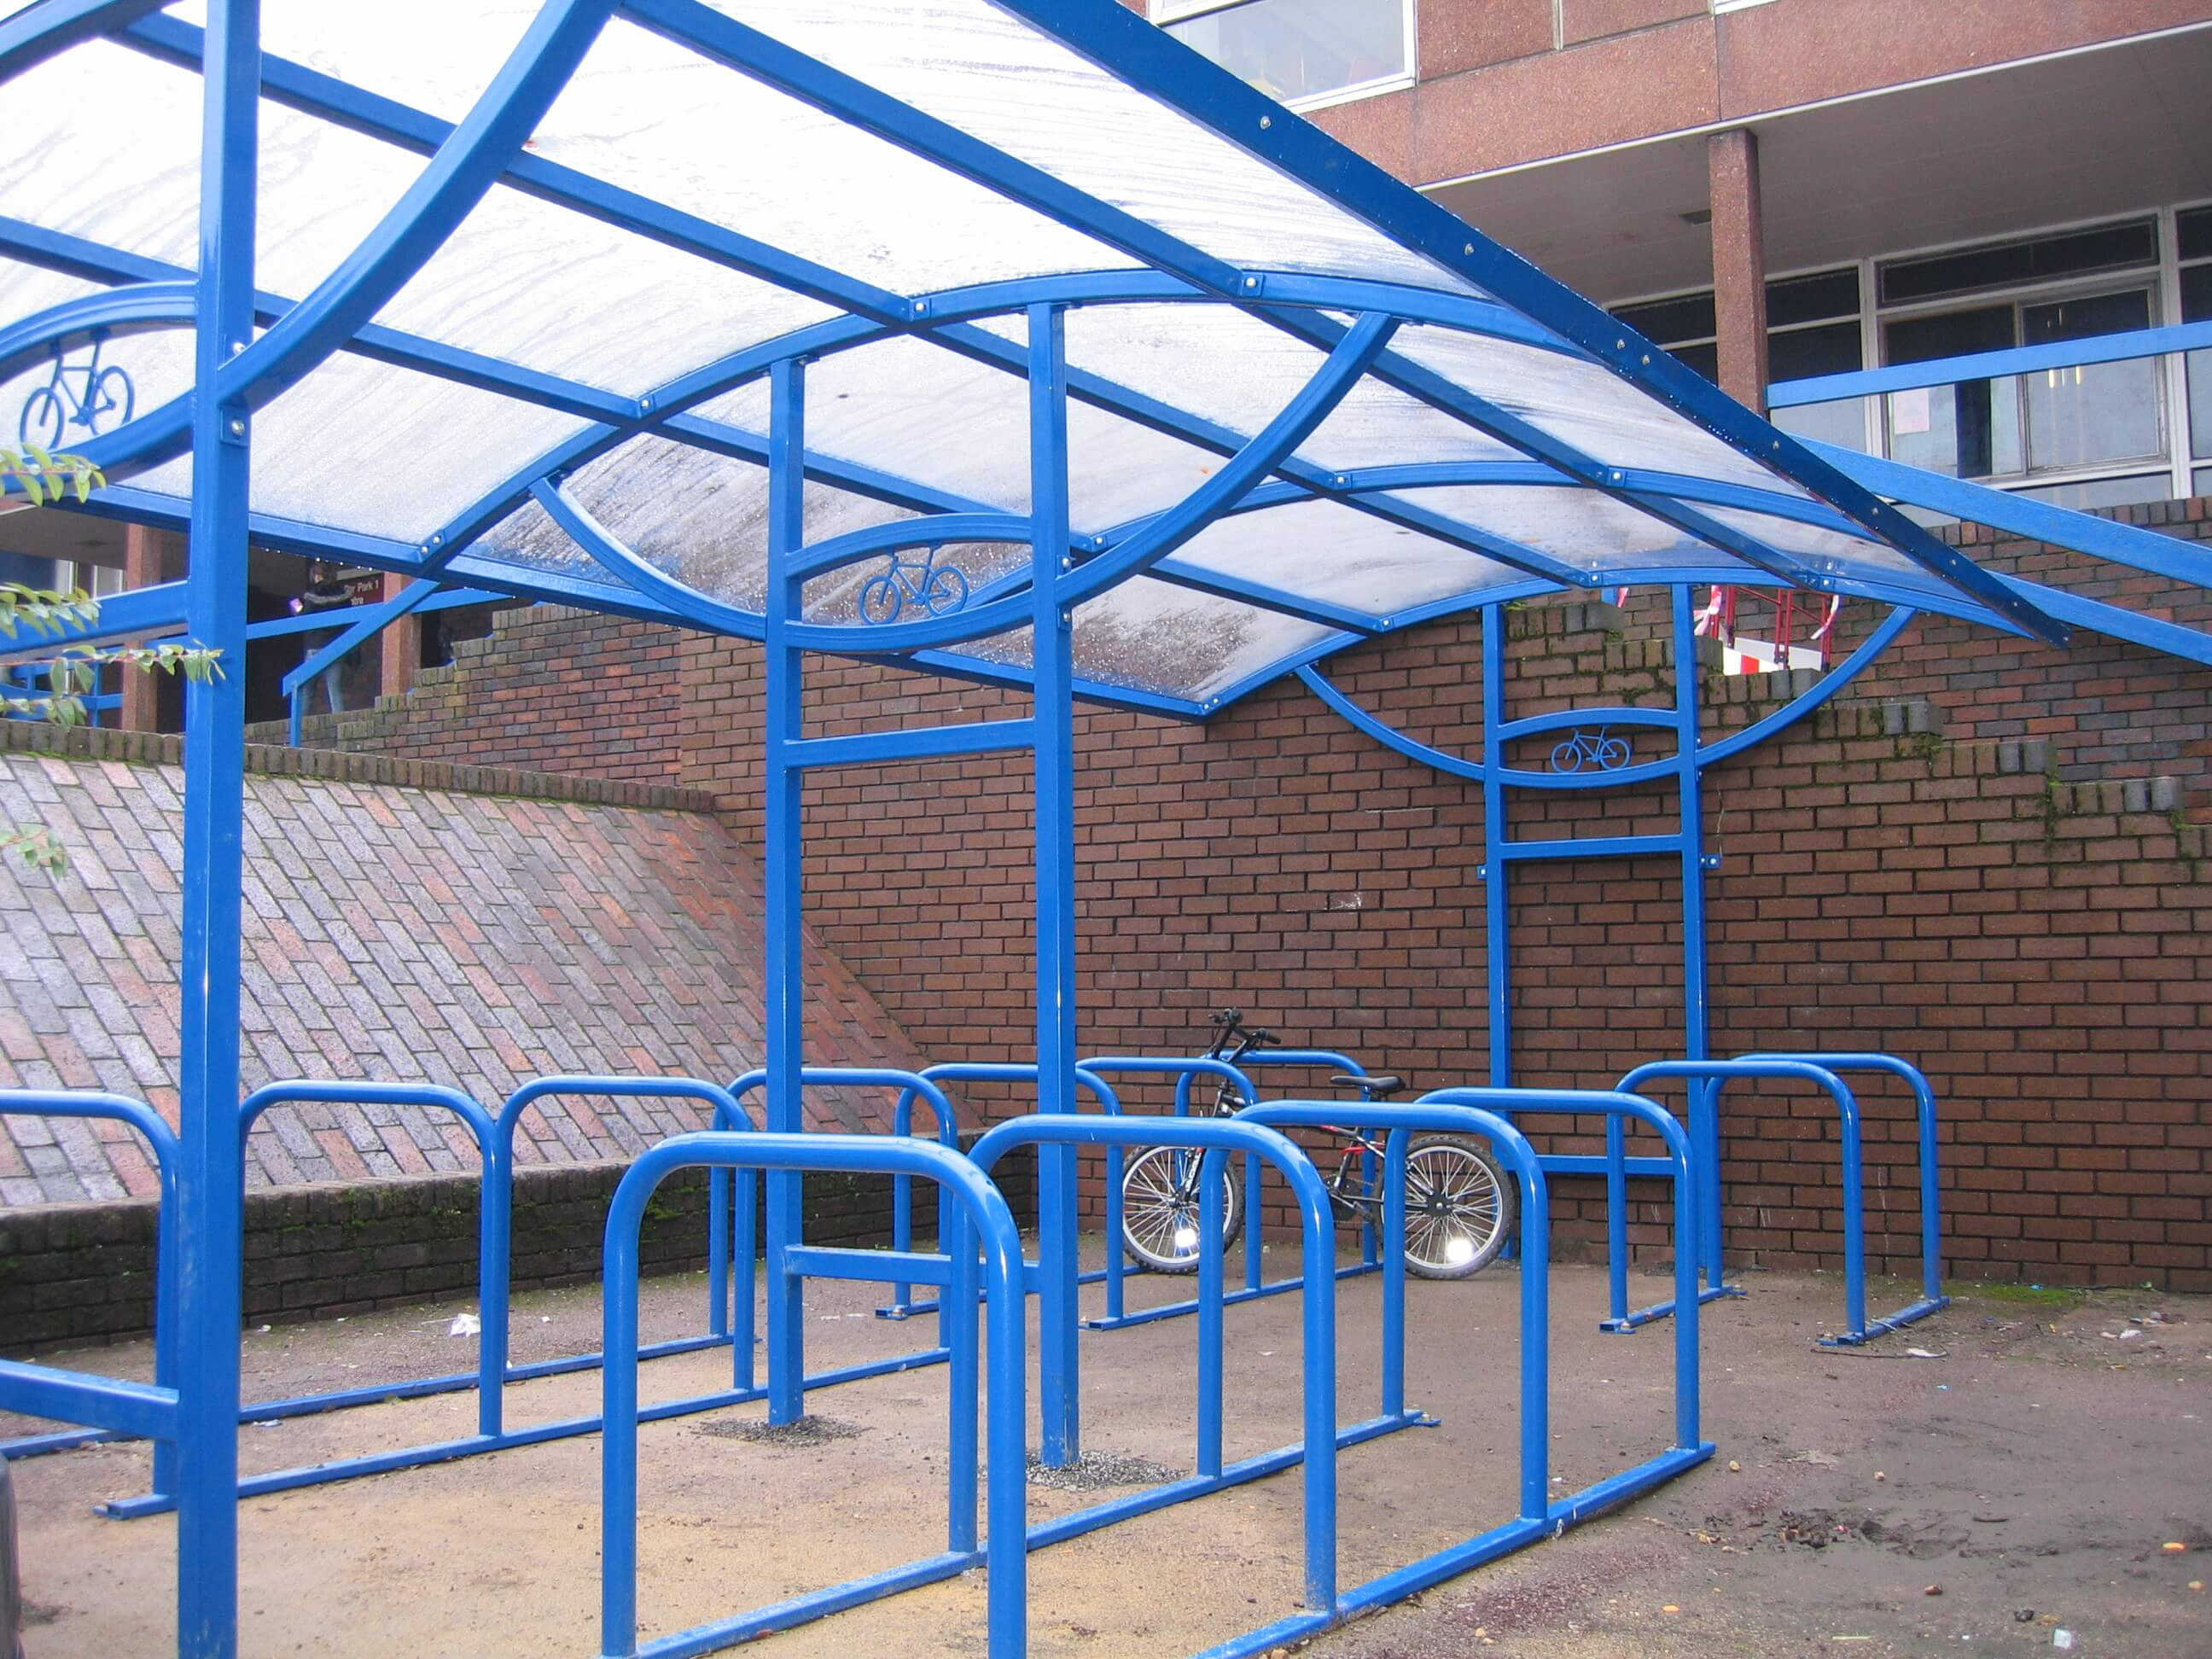 Ridings Cycle Shelter